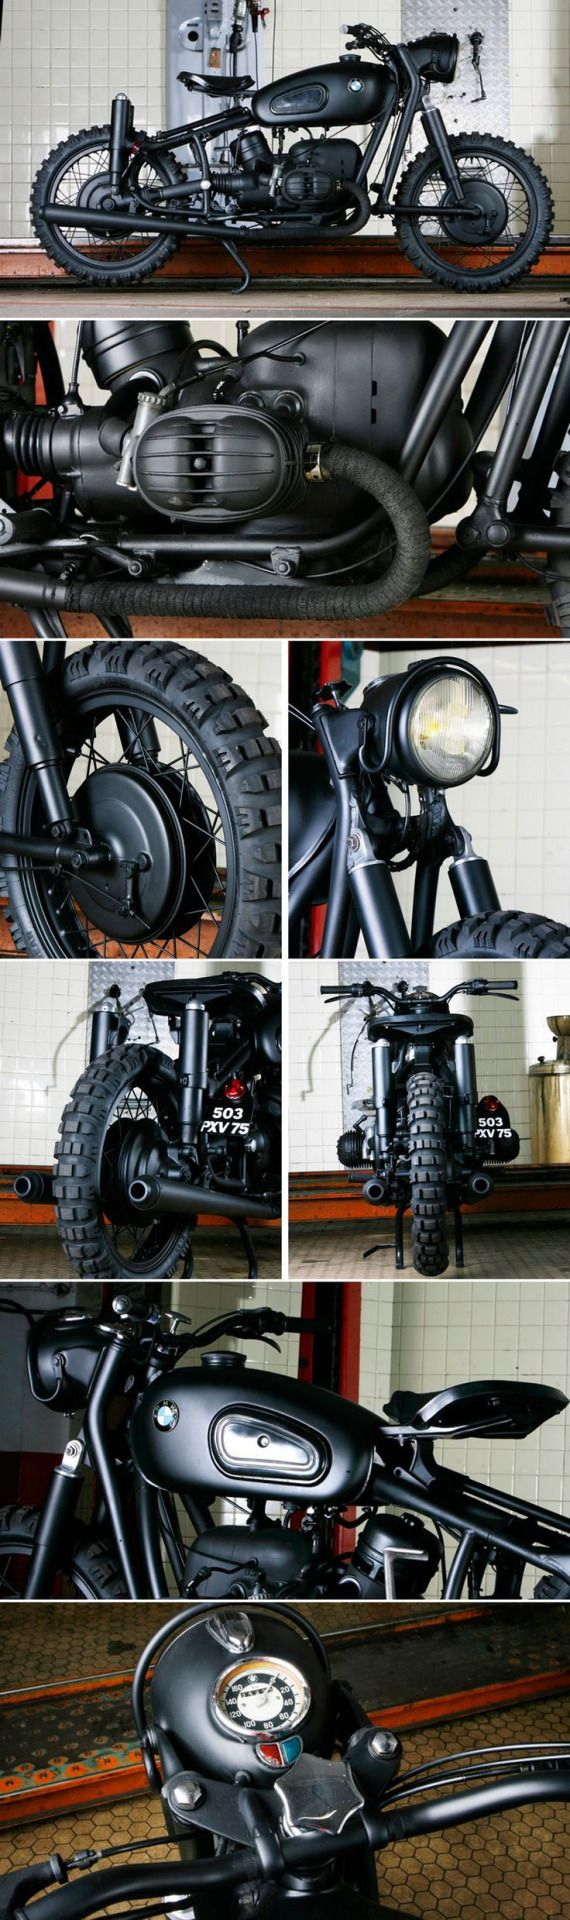 Bmw Motorcycle : Photo